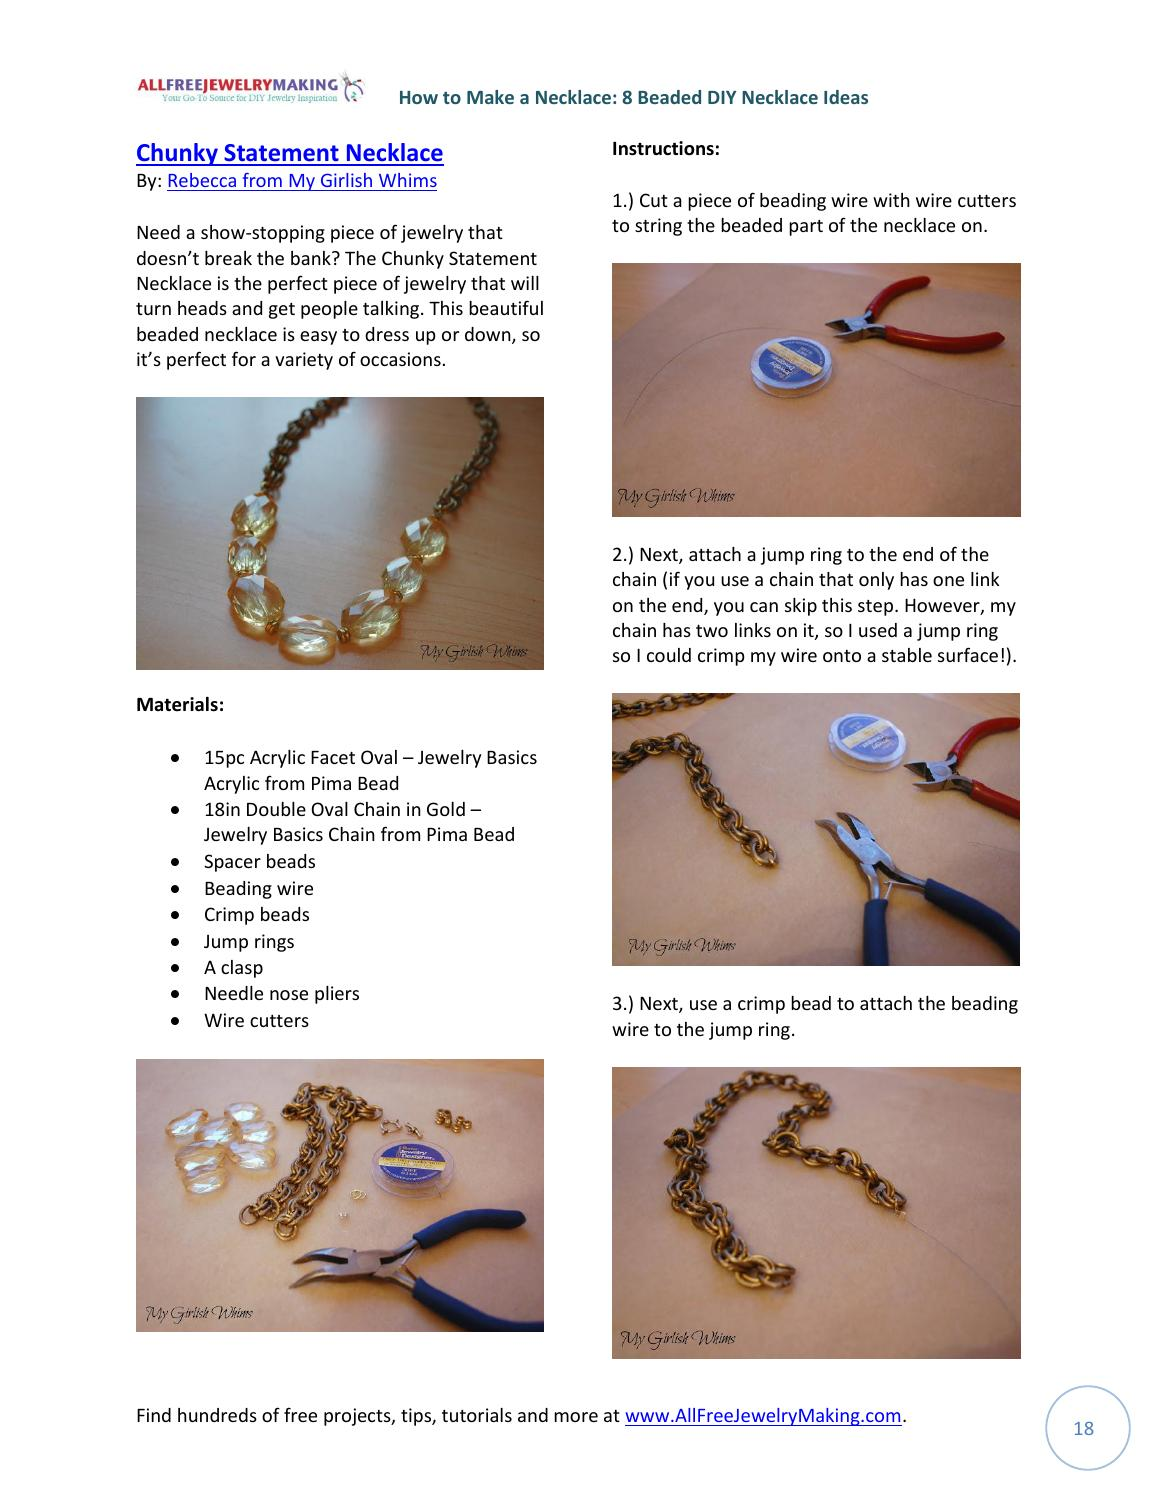 How to make a necklace 8 beaded diy necklace ideas free ebook by ...